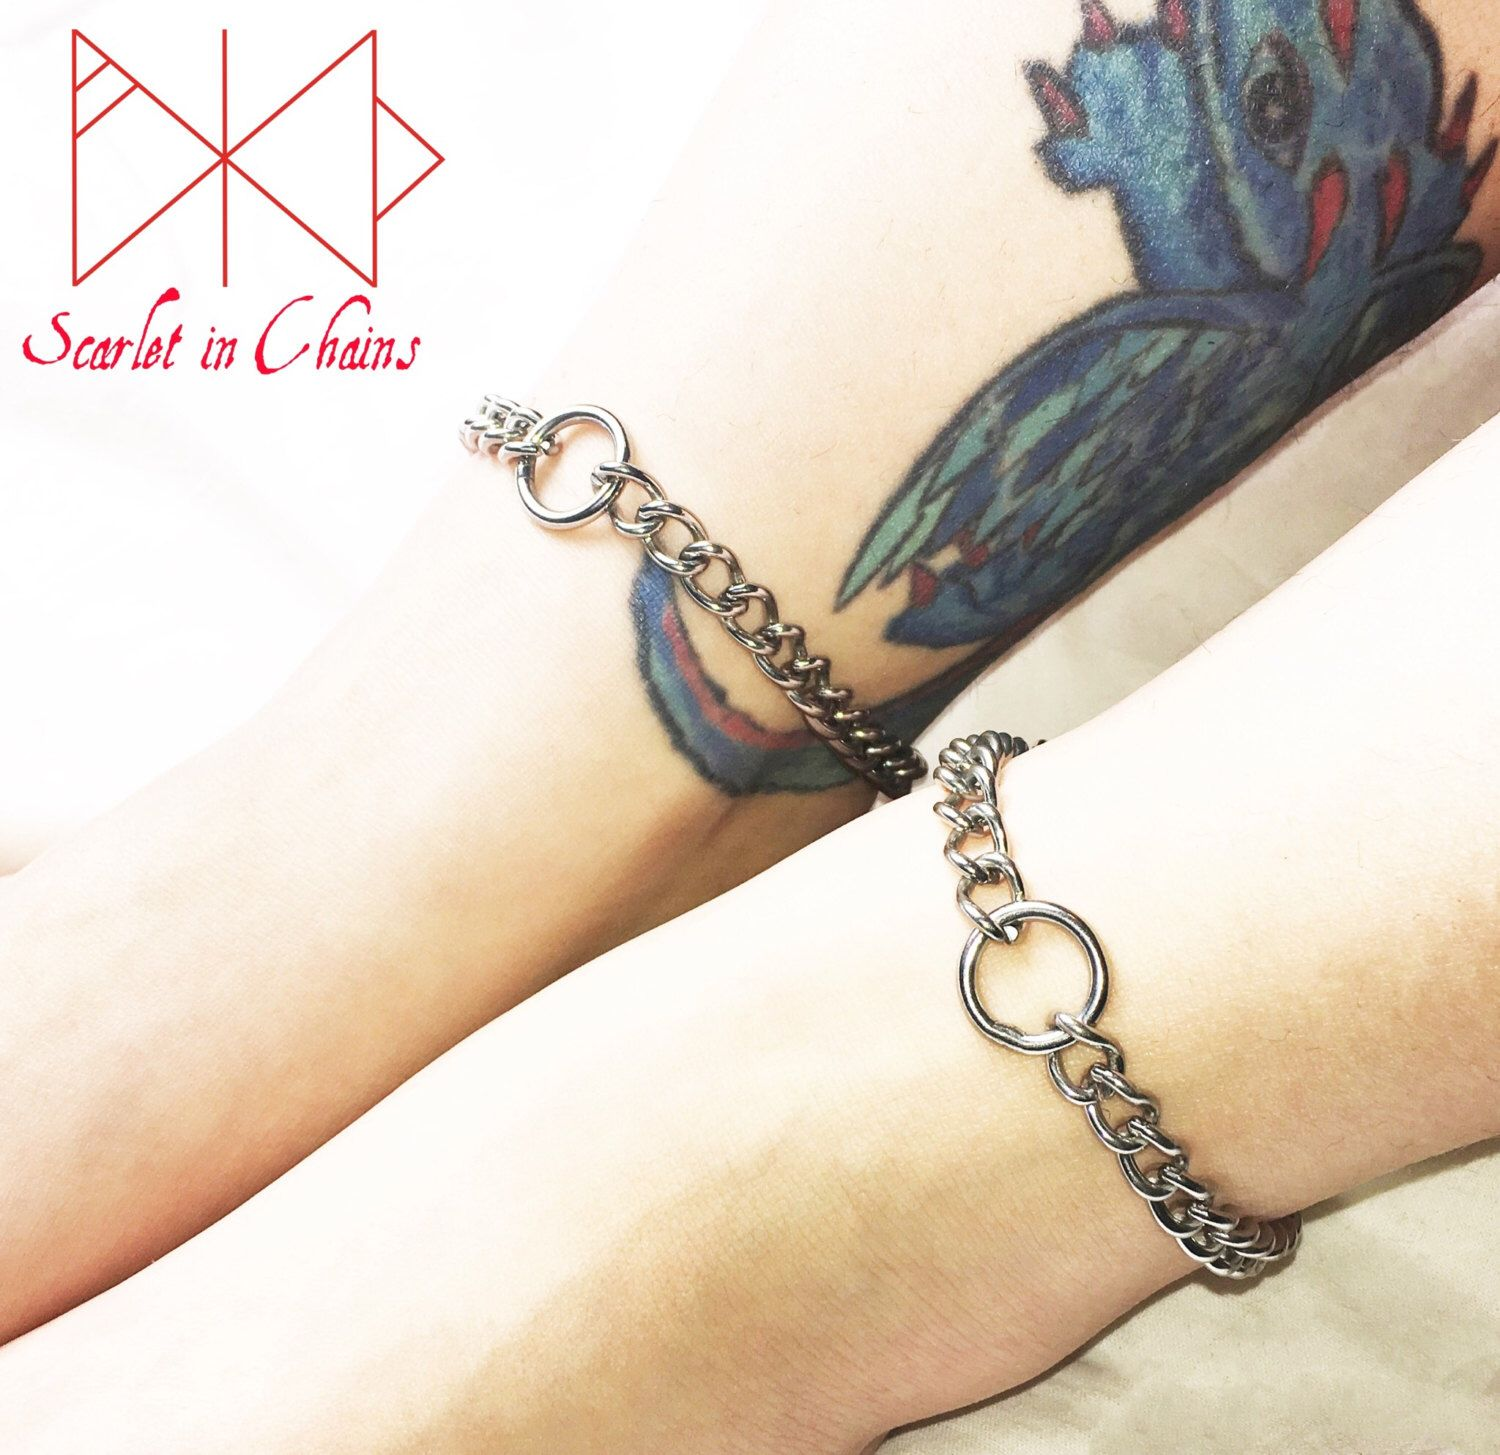 anklet slave shaped chainmaille thecagedflower with bdsm locking padlock stainless by on steel pin heart